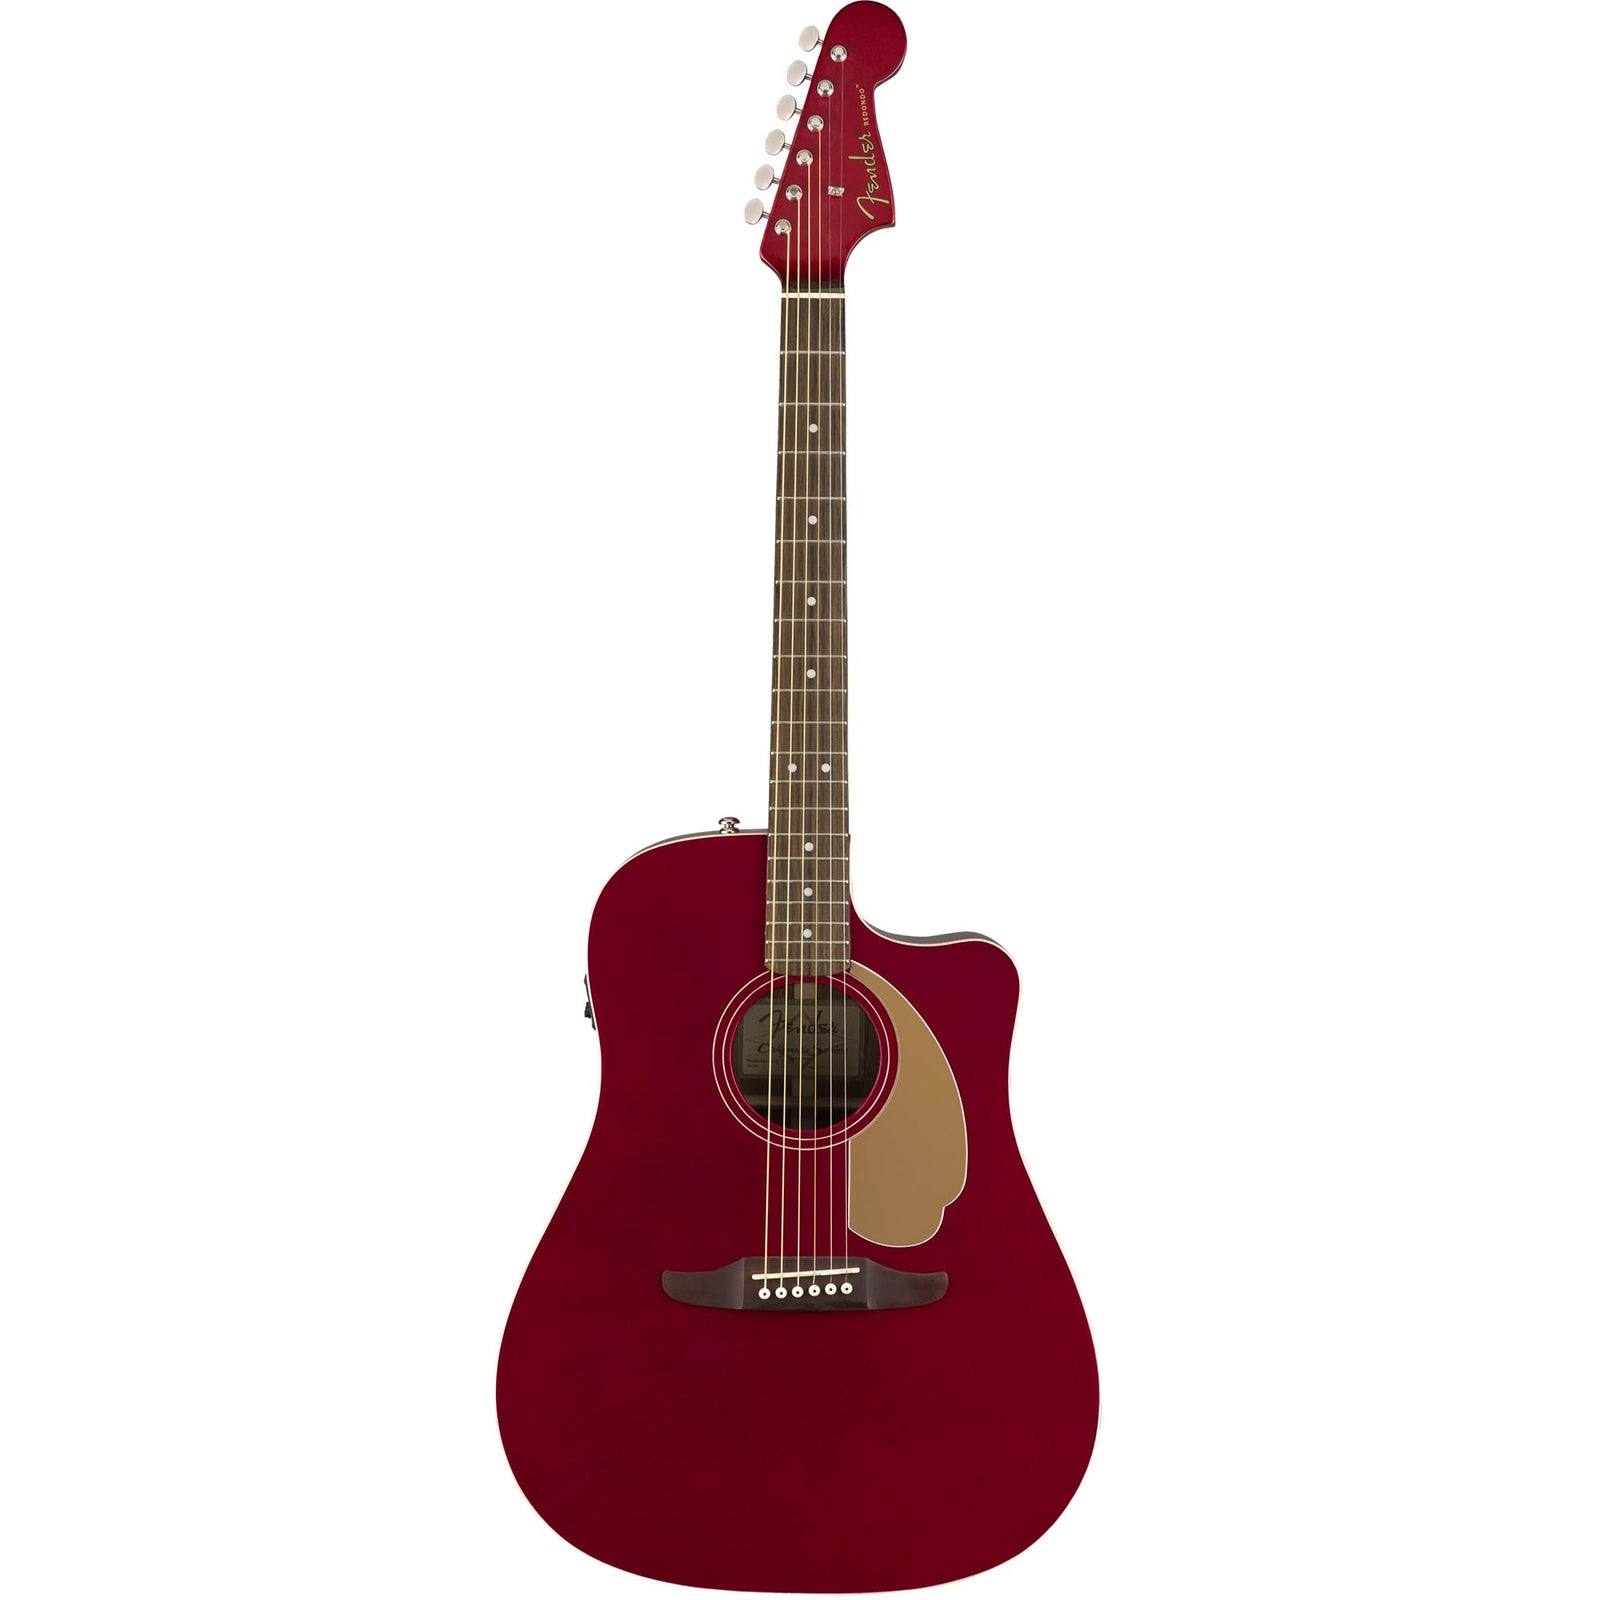 Fender Redondo Player - Candy Apple Red - Image: 3